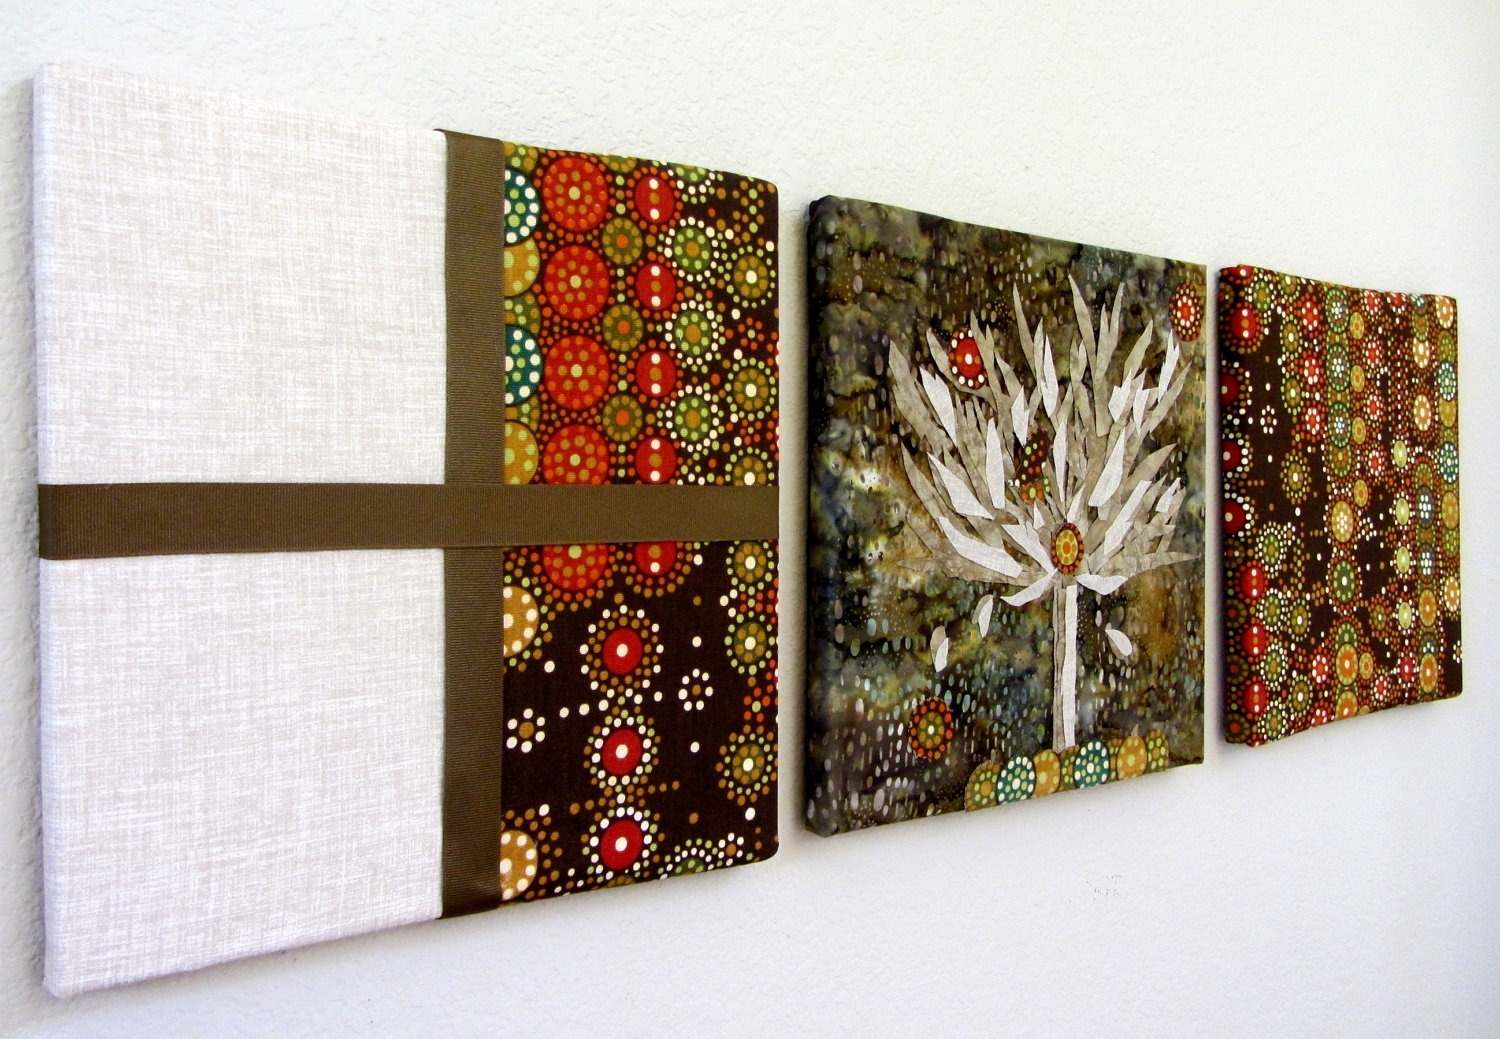 Living Room Wall Art Mtgz – Design On Vine With Regard To Most Up To Date Indian Fabric Wall Art (View 9 of 15)